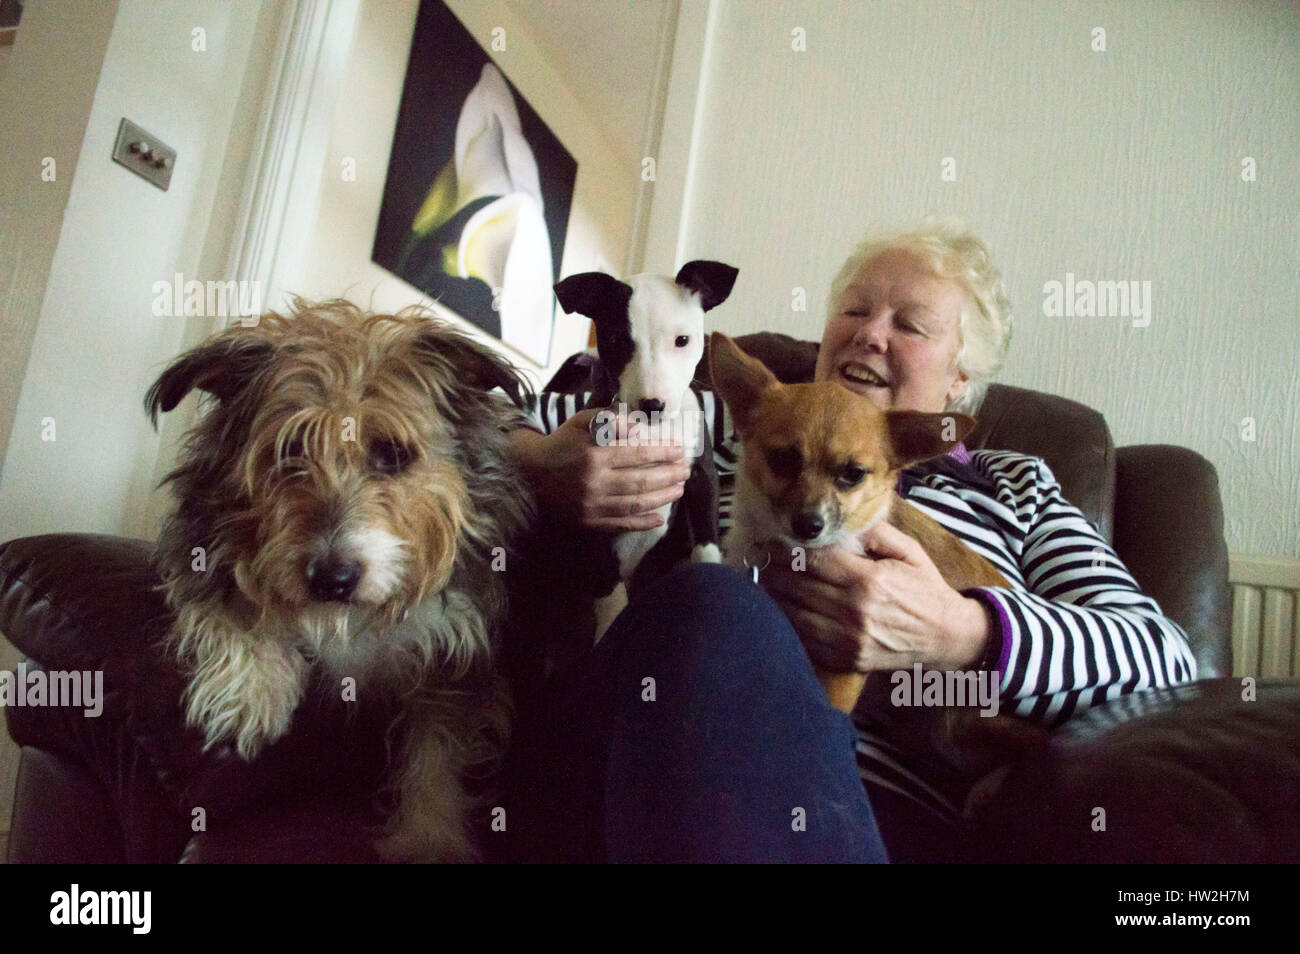 BRIDGEND, UK. Julie Wort, from Bridgend, runs the Wagadog Inn, as well as fostering many dogs from Animal Rescue - Stock Image